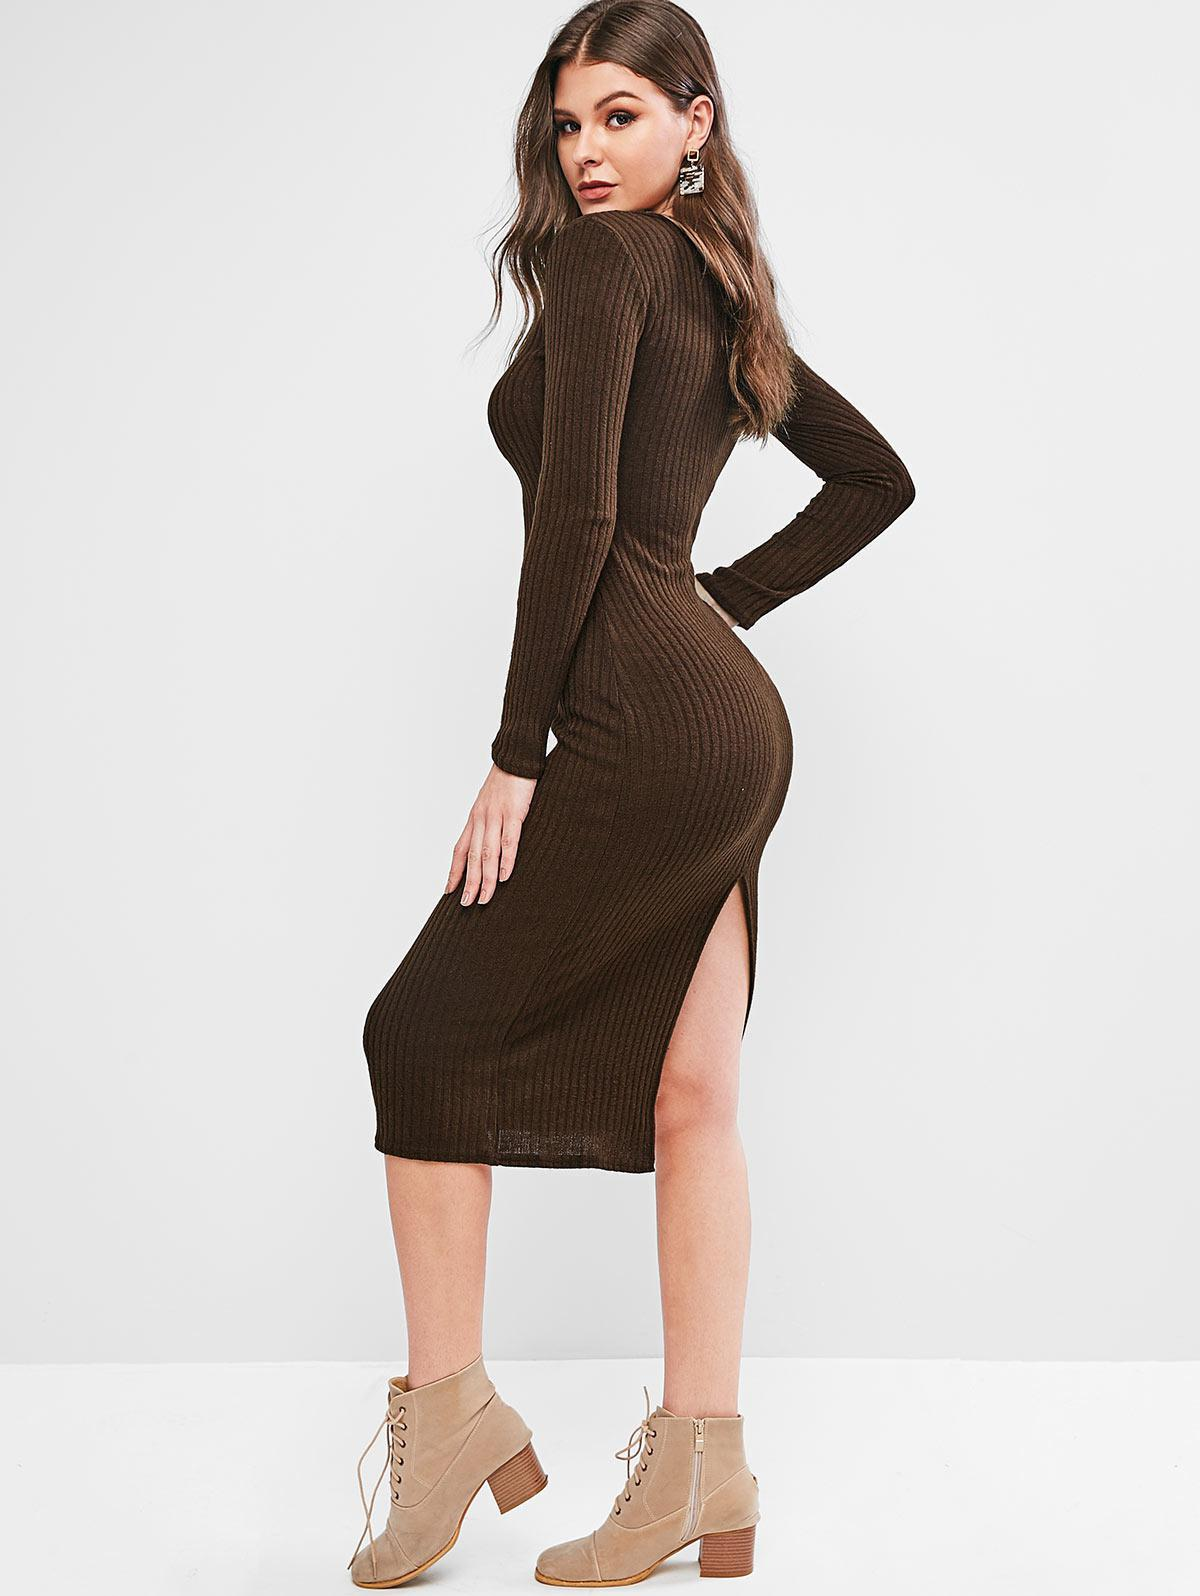 V Neck Solid Sheath Knit Dress